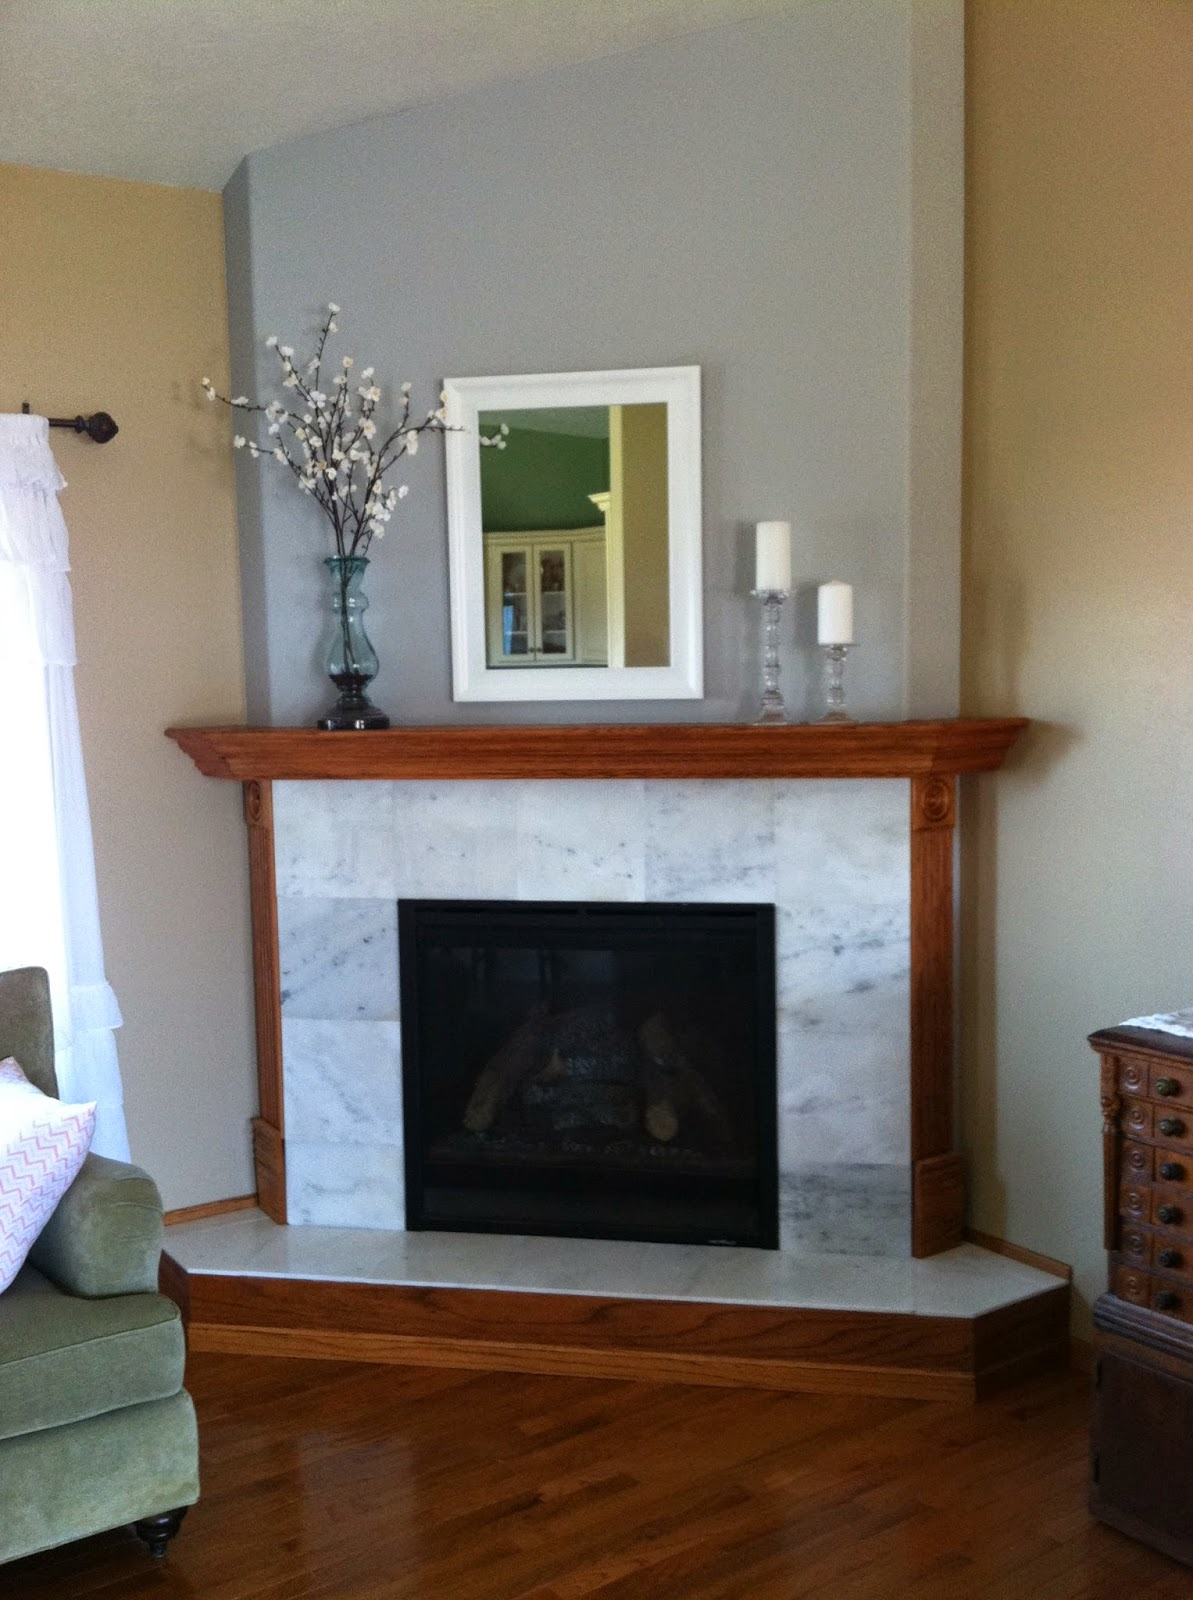 Natural Homemade Living Diy Fireplace And Mantel Project